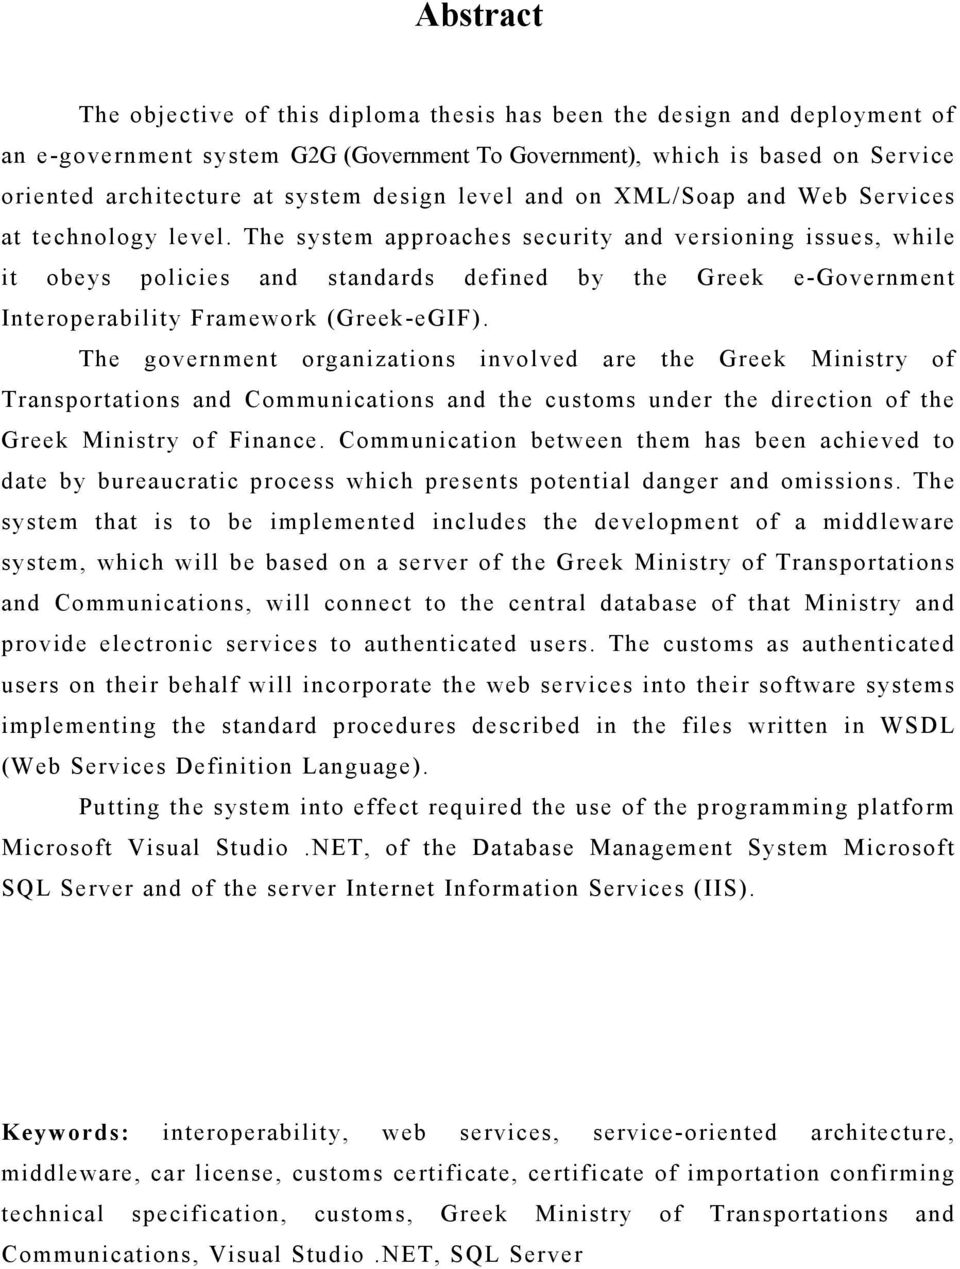 The system approaches security and versioning issues, while it obeys policies and standards defined by the Greek e-government Interoperability Framework (Greek-eGIF).